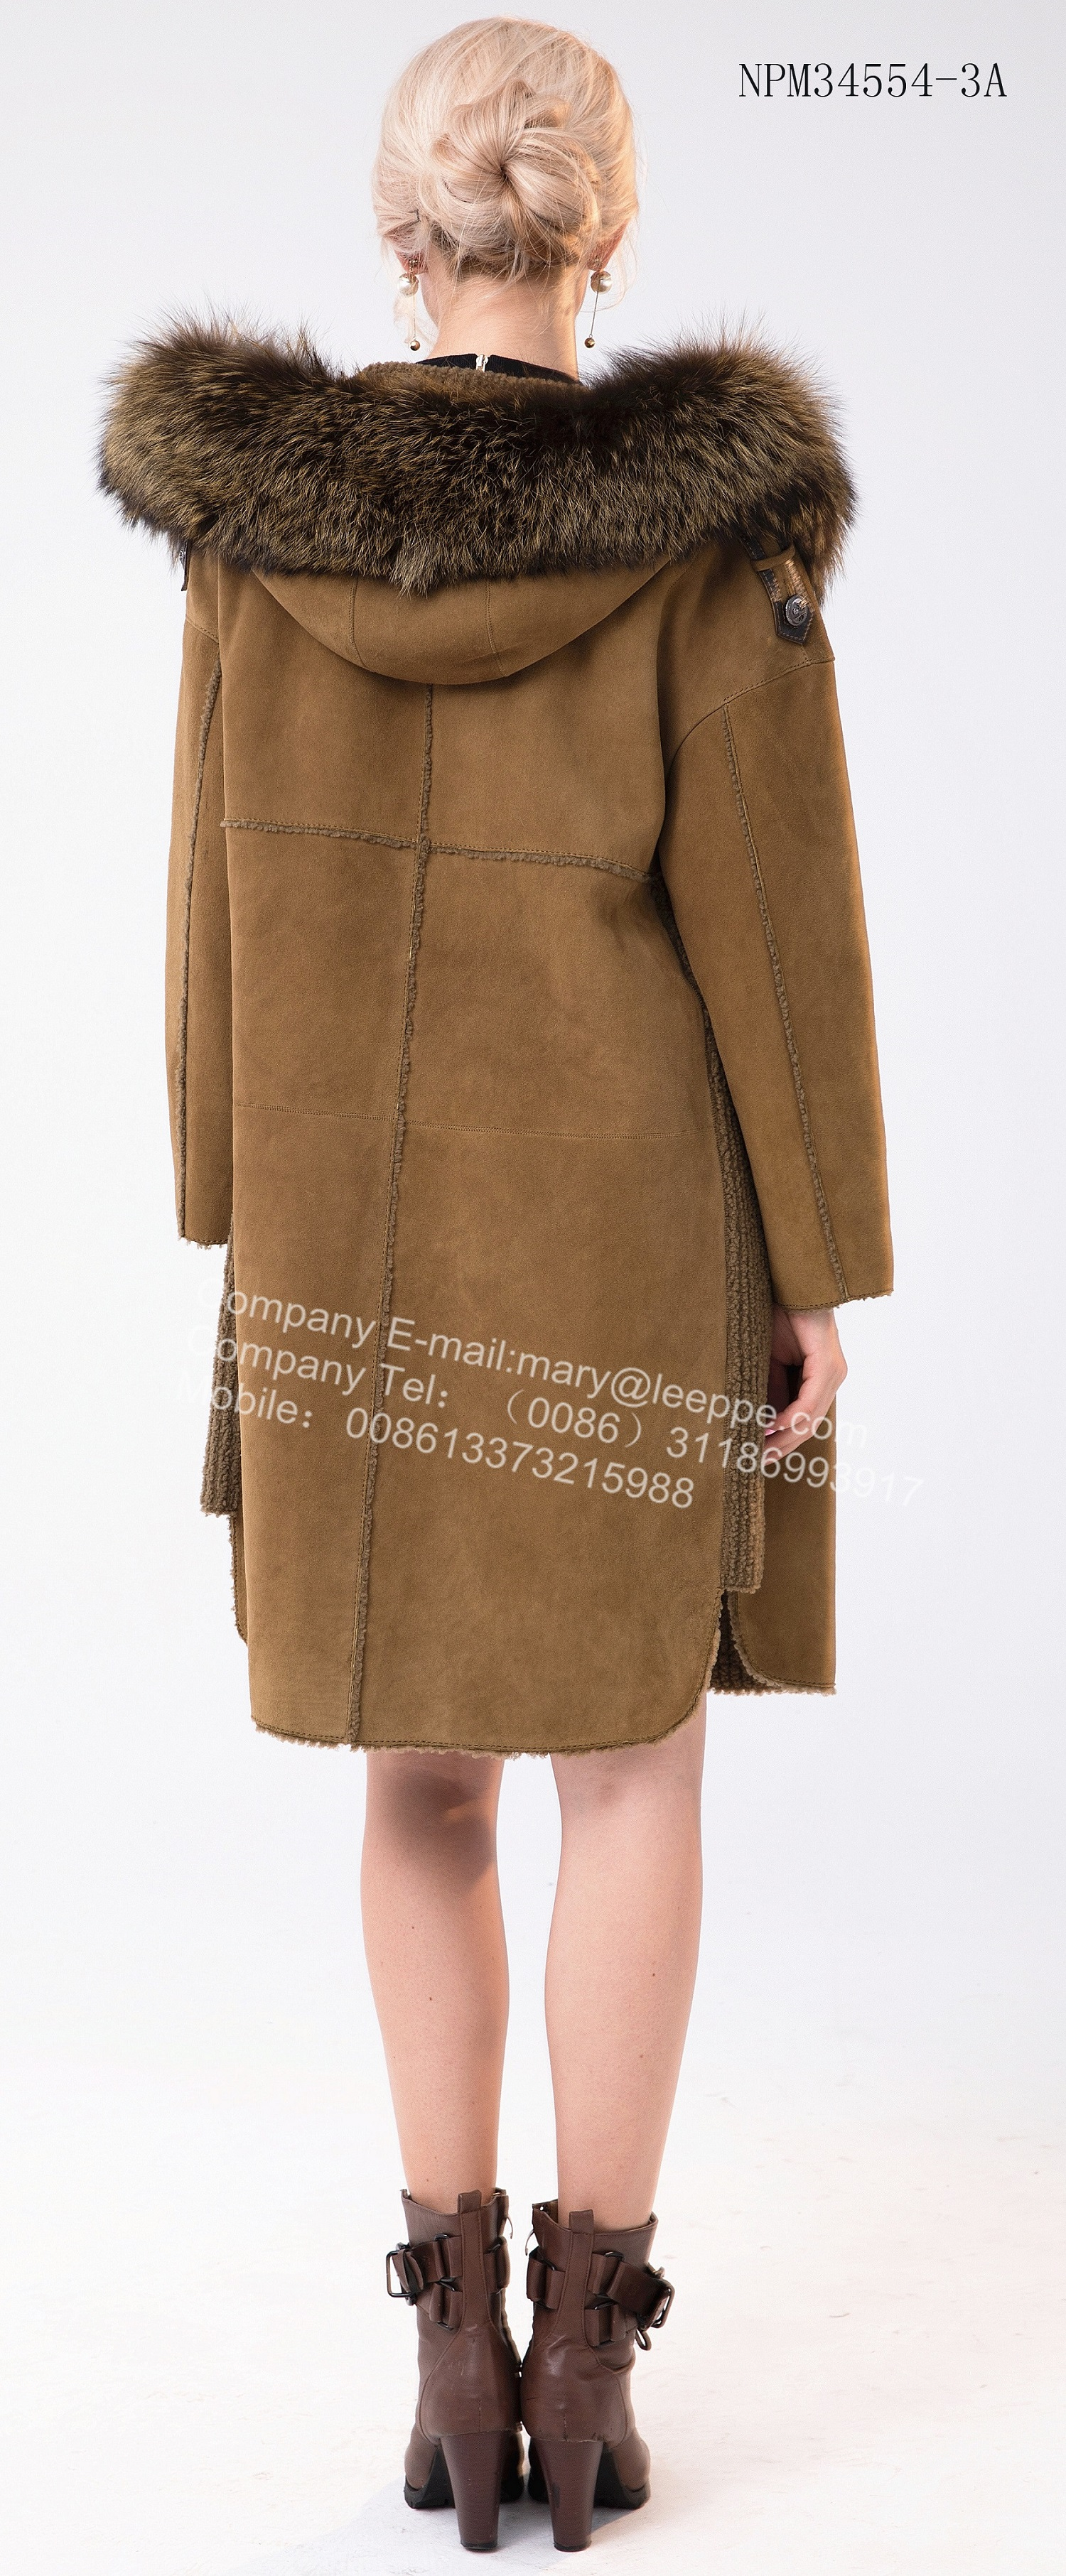 Spain Merino Shearling Coat